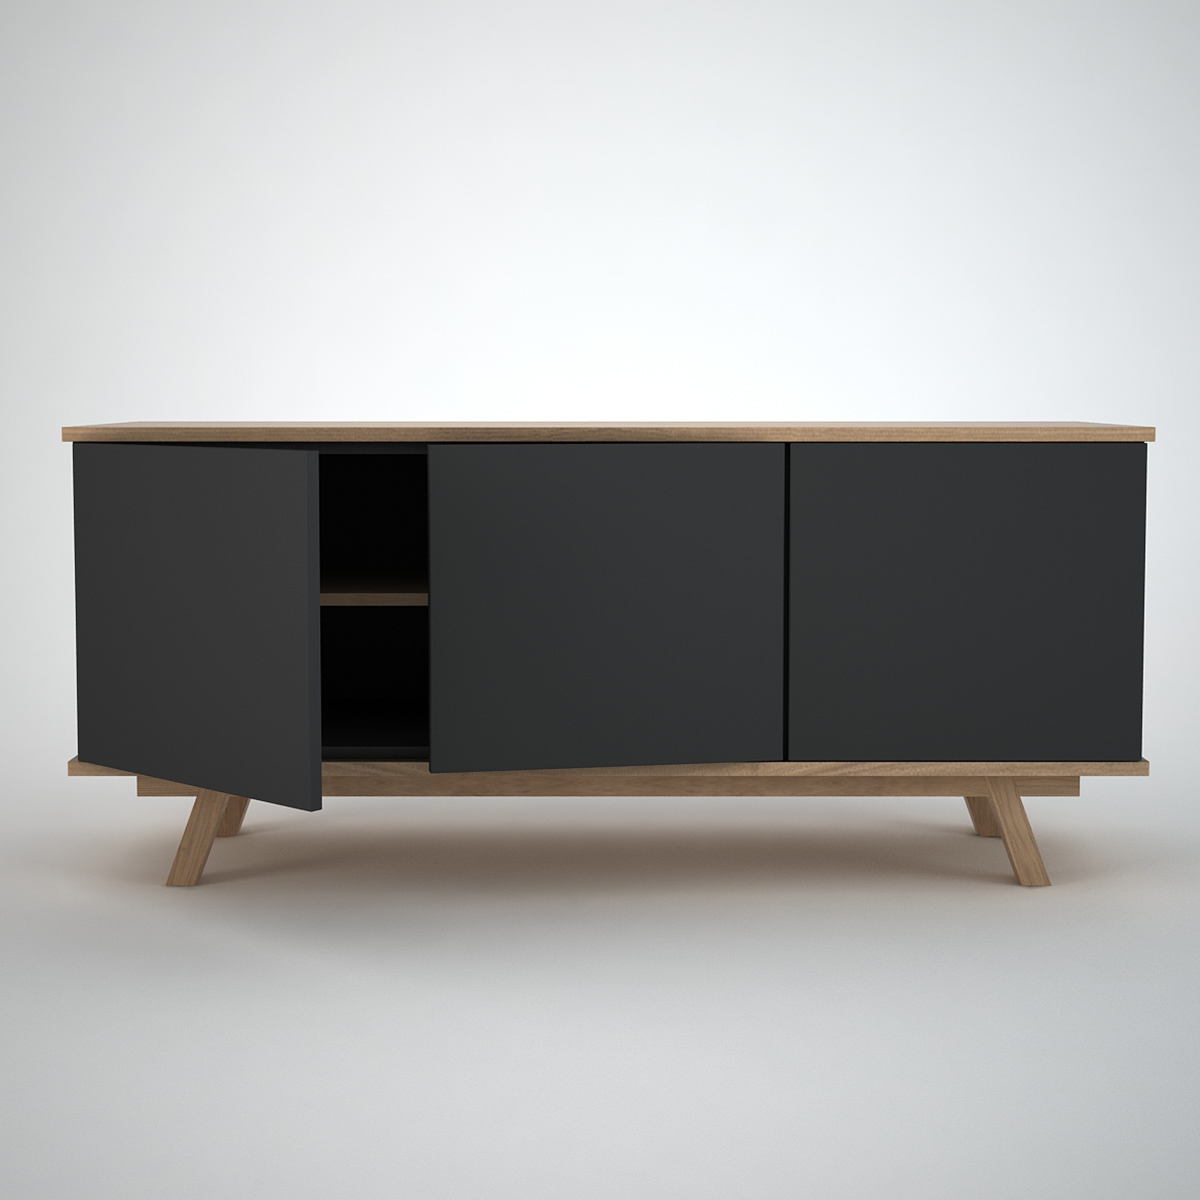 ottawa sideboard 3 anthracite join furniture. Black Bedroom Furniture Sets. Home Design Ideas